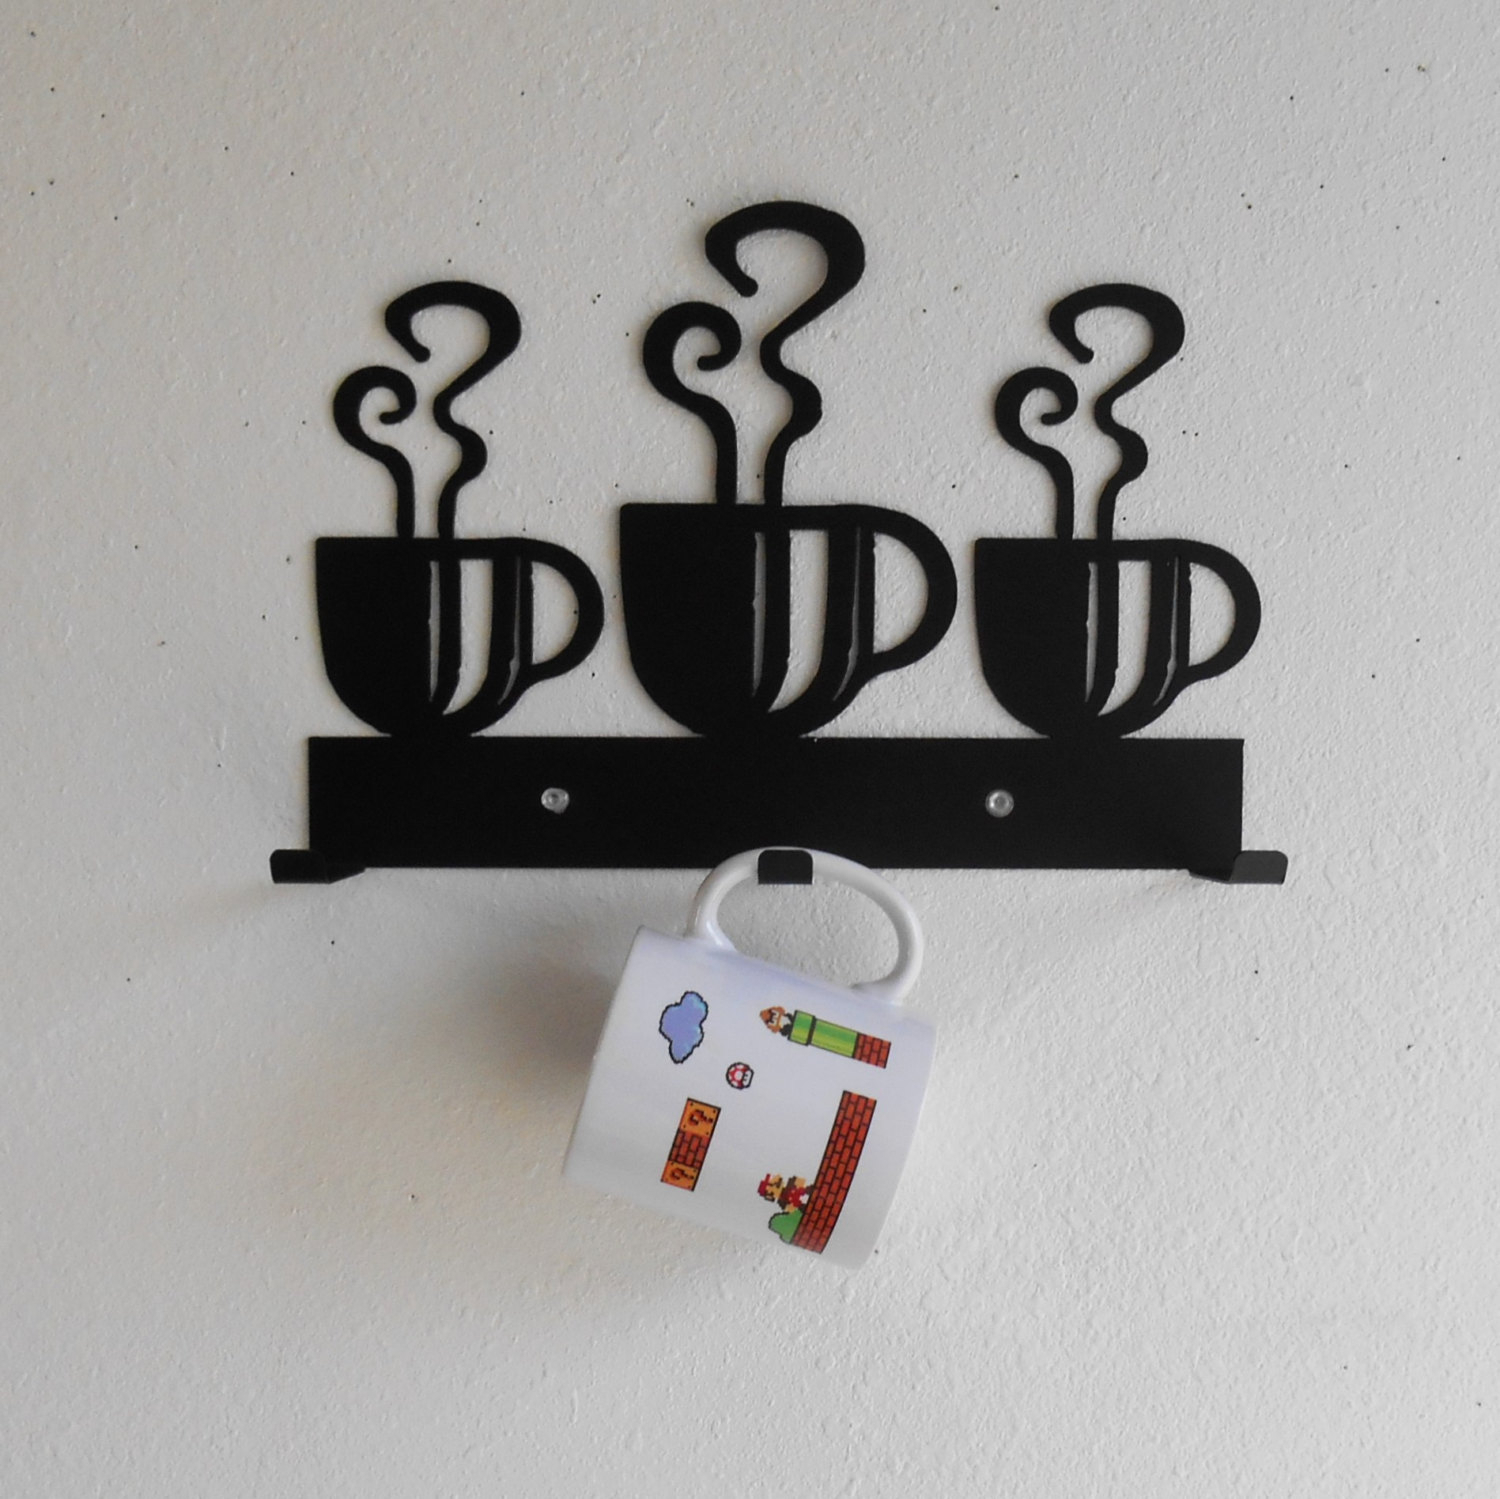 Coffee Cup Rack / Three Cup Holder / Metal Wall Hanging / Kitchen Organizer / Kitchen Decor Regarding Three Glass Holder Wall Decor (View 4 of 30)